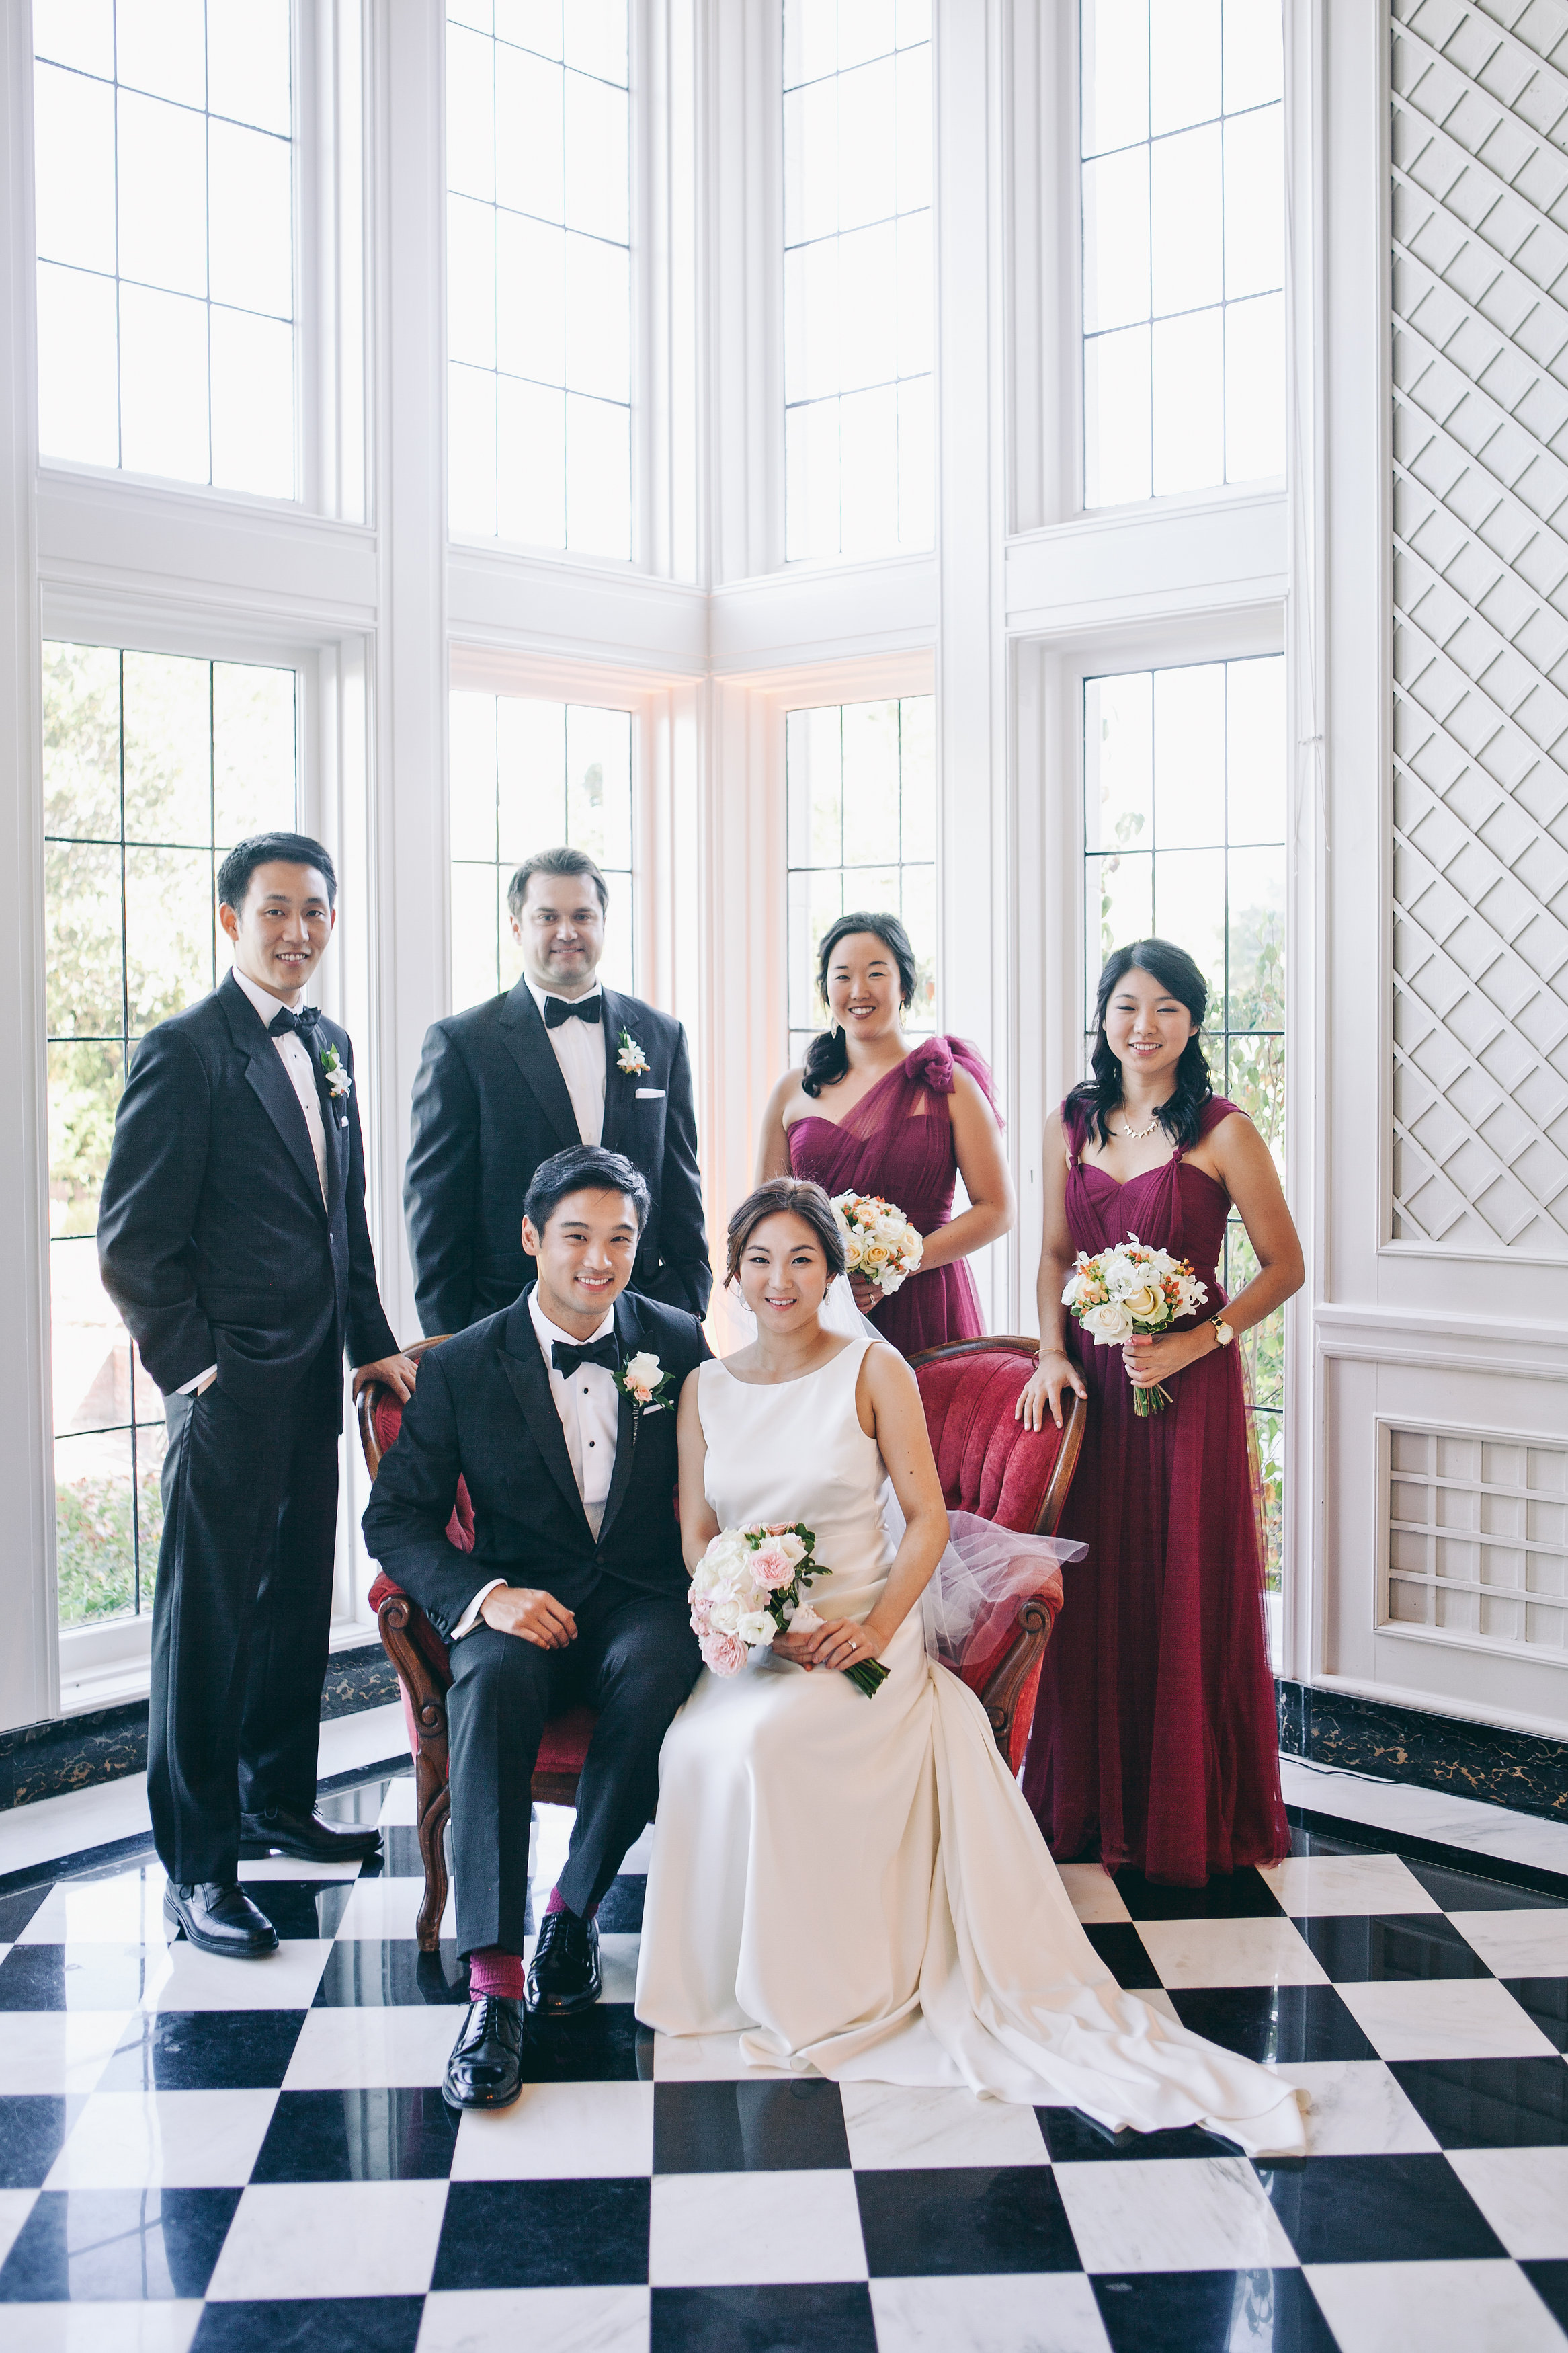 sarah_eric_kohl_mansion_wedding_128.jpg